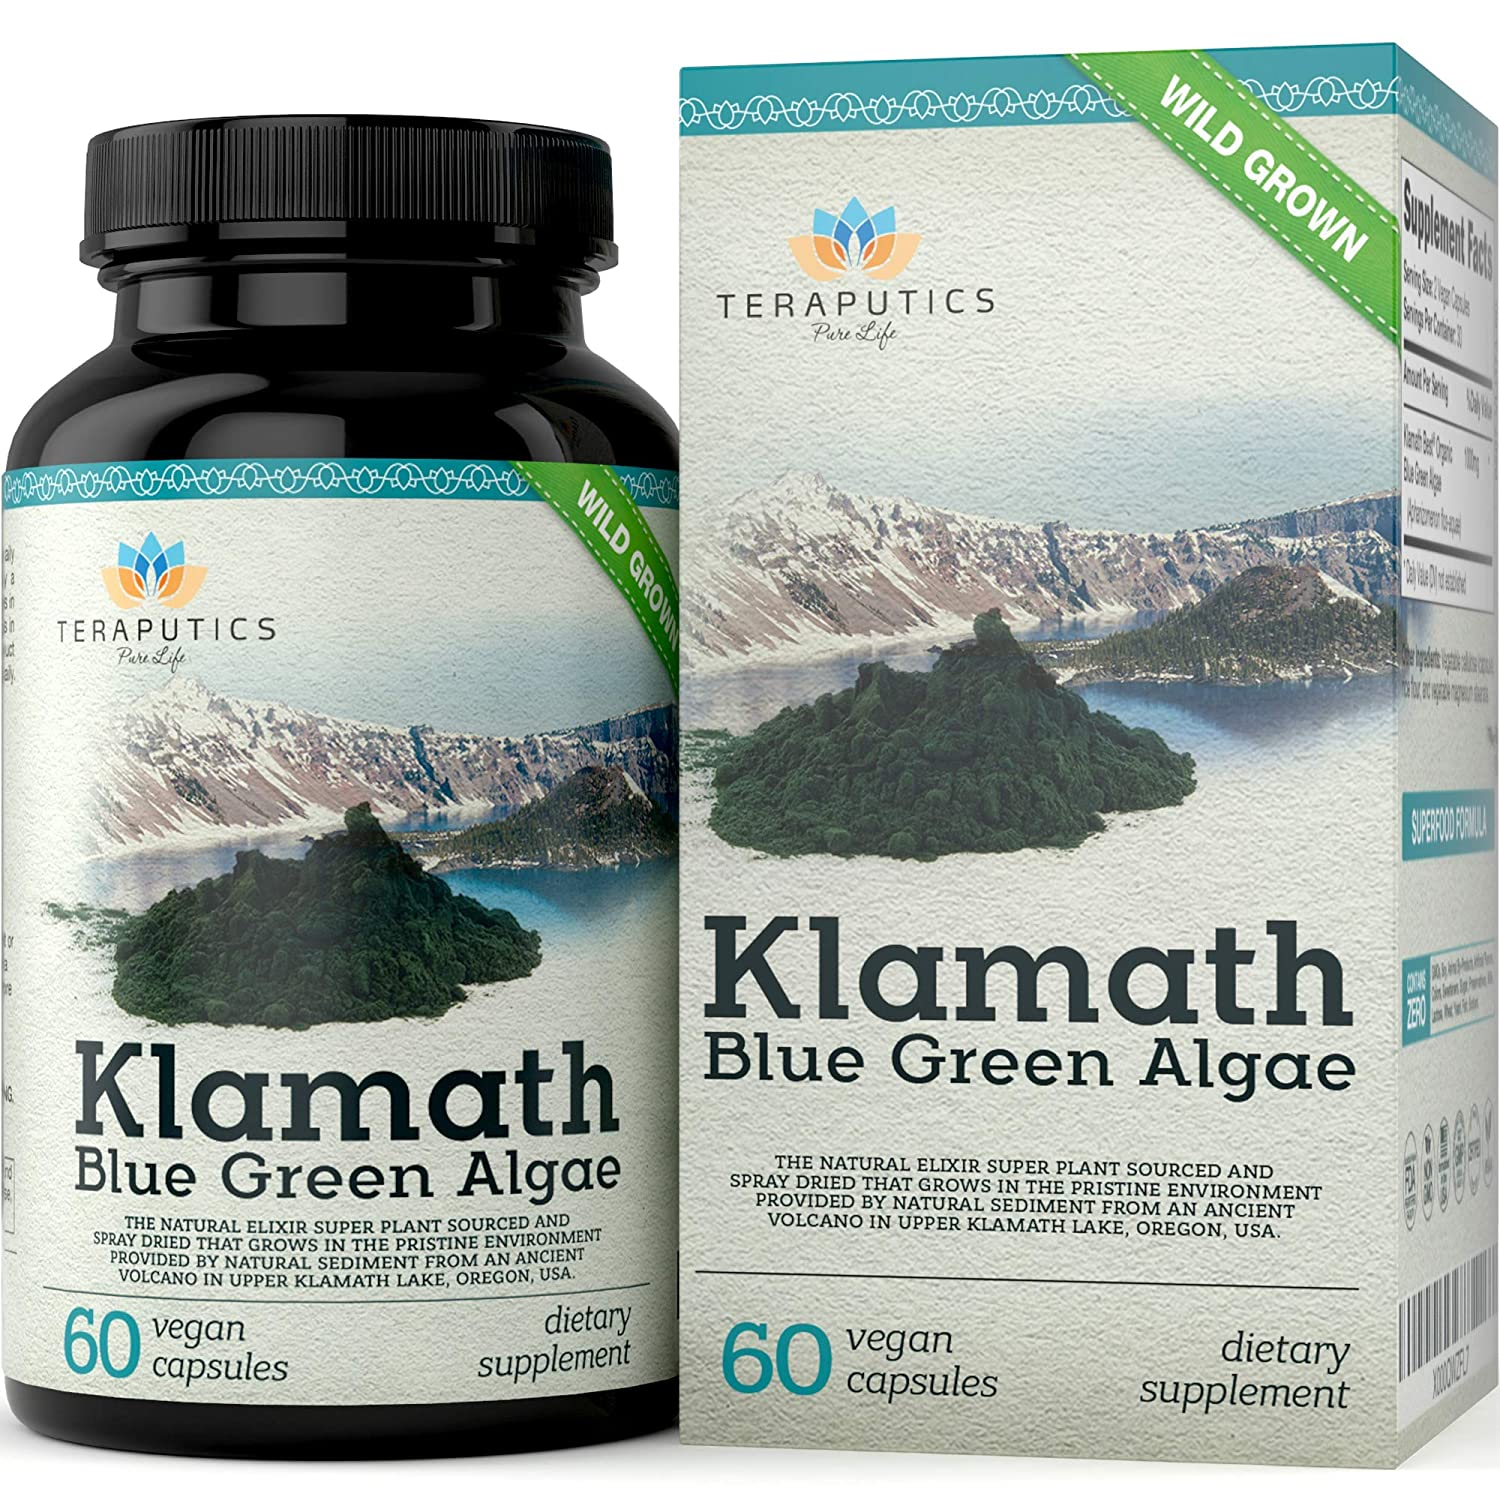 Premium Klamath Blue Green Algae – More Powerful Than Spirulina and Chlorella Supplements Pure Chlorophyll Rich SuperFood, Sourced from Organic Klamath Lake, 500mg, 60 Vegan Capsules